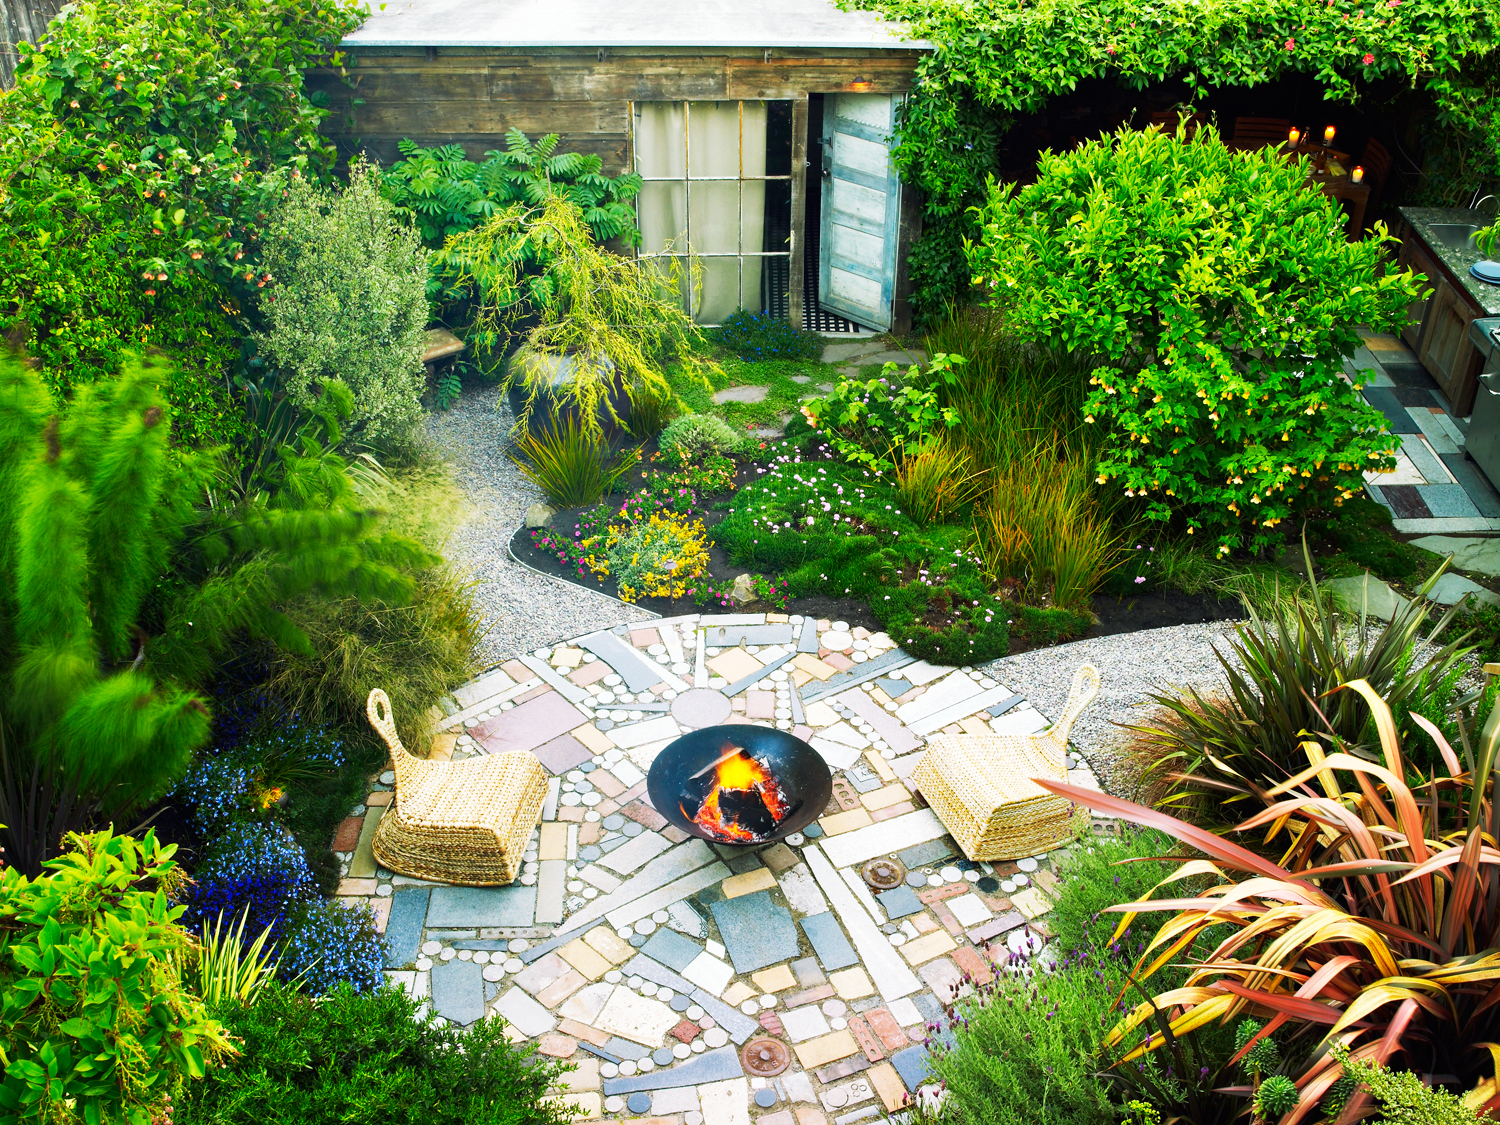 Phantasy Texas Making S Landscaped Front Yards Salvage Secrets Is Your Yard Or Garden Small On Get Big Ideas Landscaped Backyards S outdoor Pictures Of Yards Landscaped